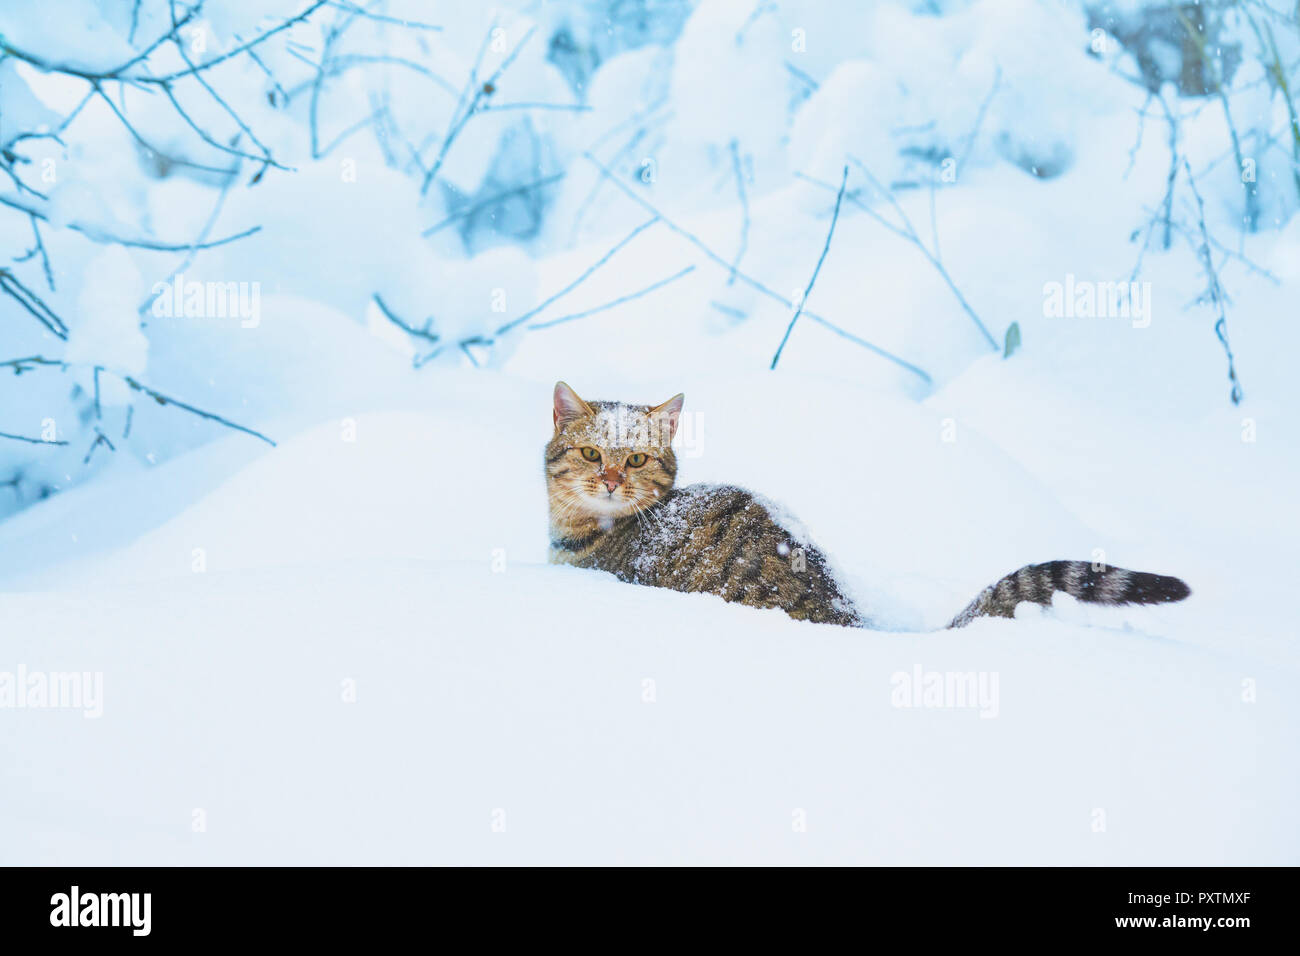 Cat covered with snow sitting in the deep snow in a blizzard - Stock Image